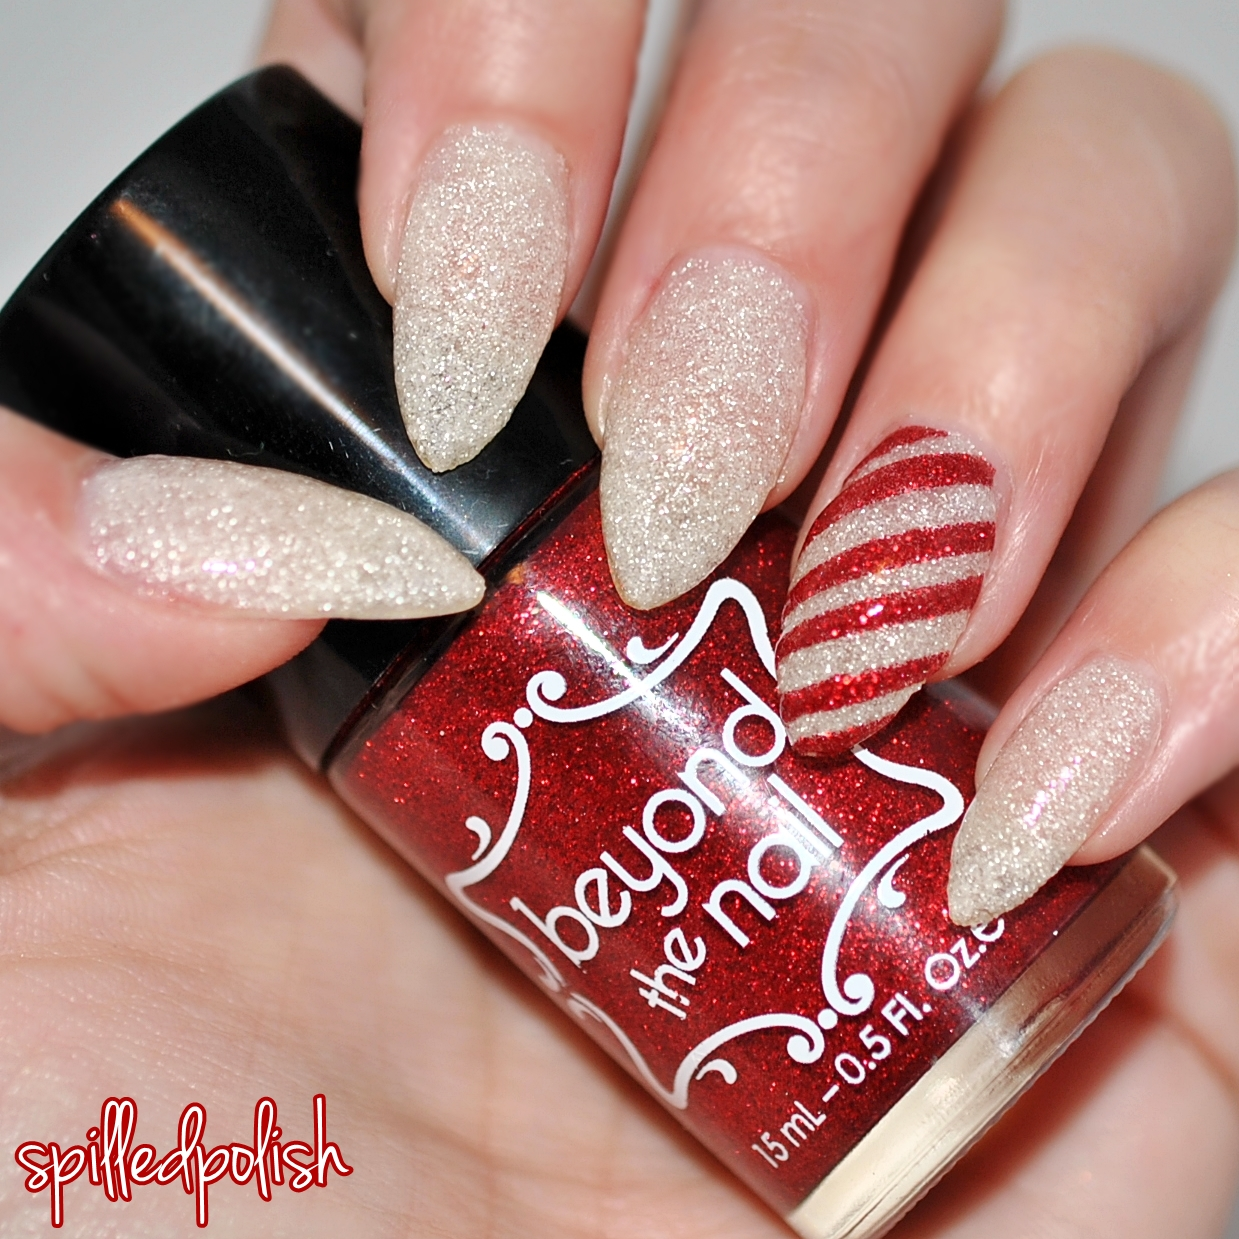 Right Ring Finger Painted Red